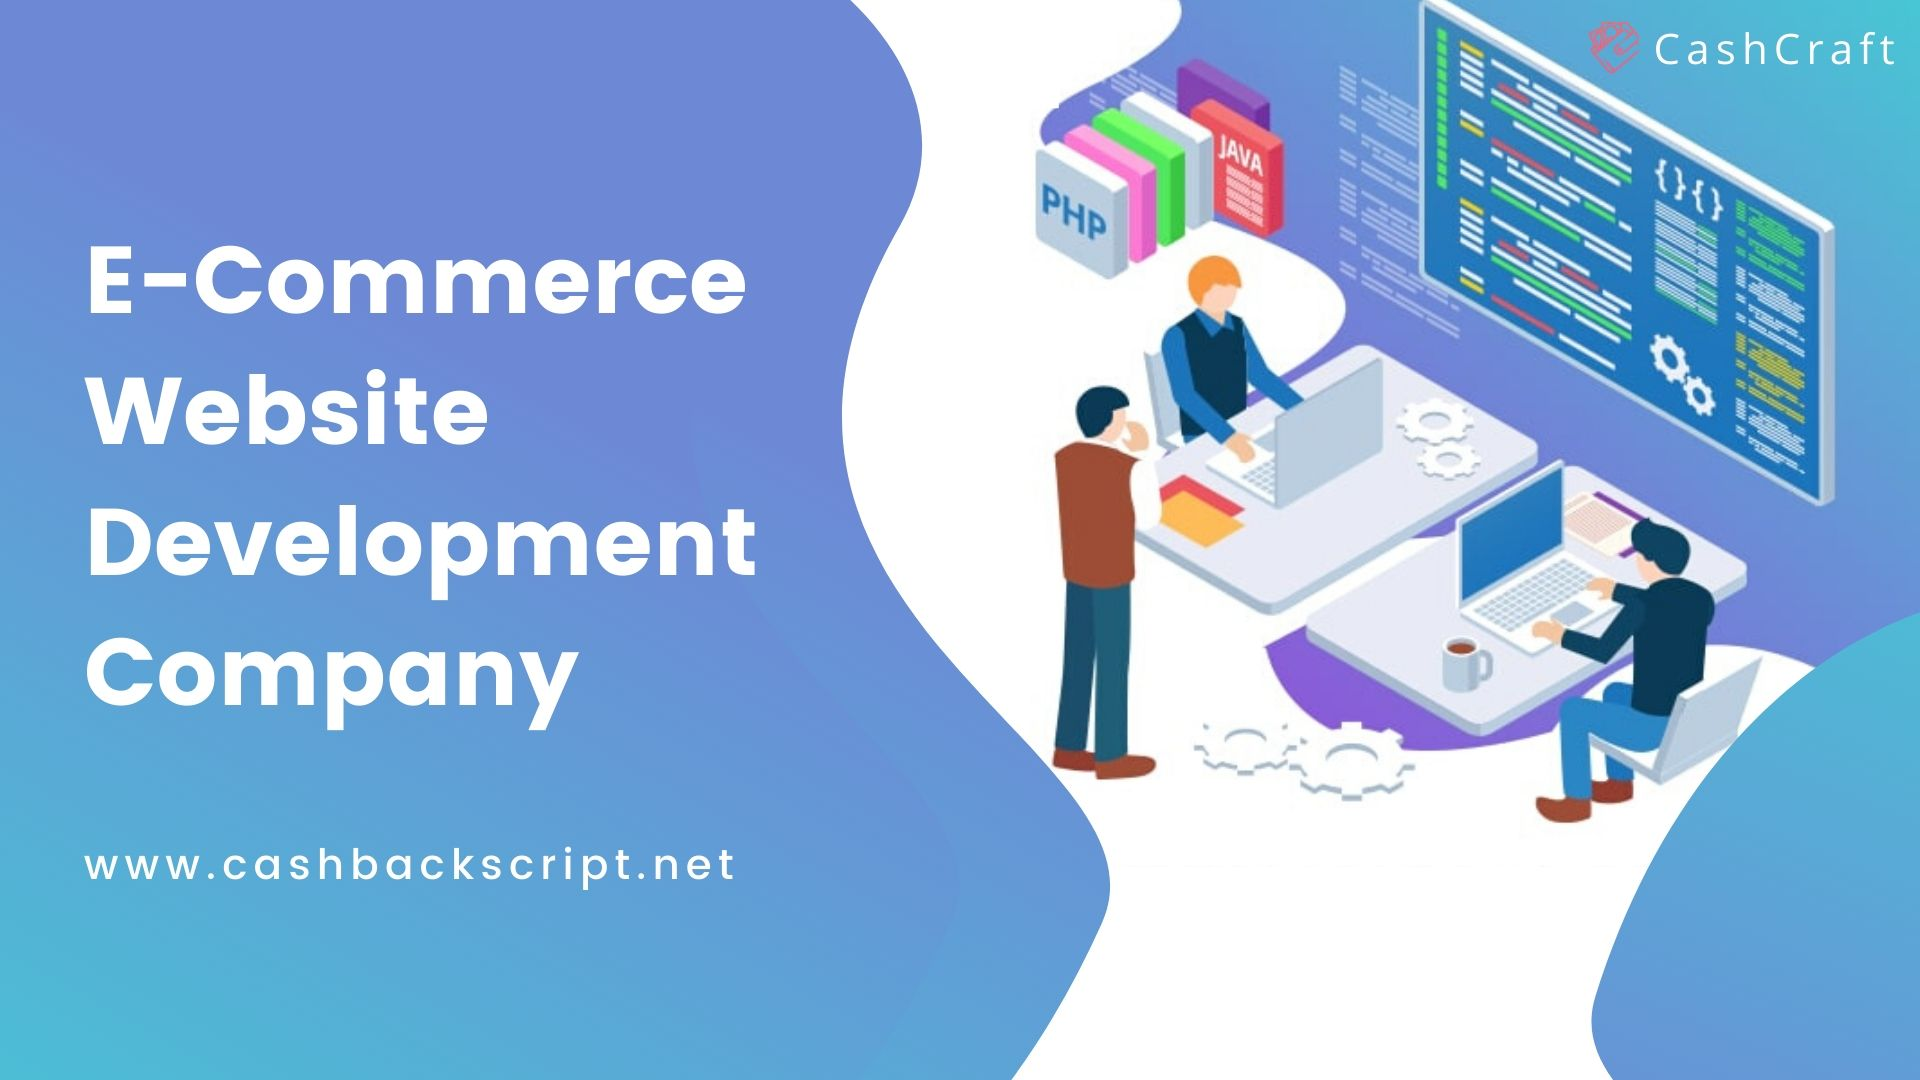 Ecommerce Website Development Company | CashCraft